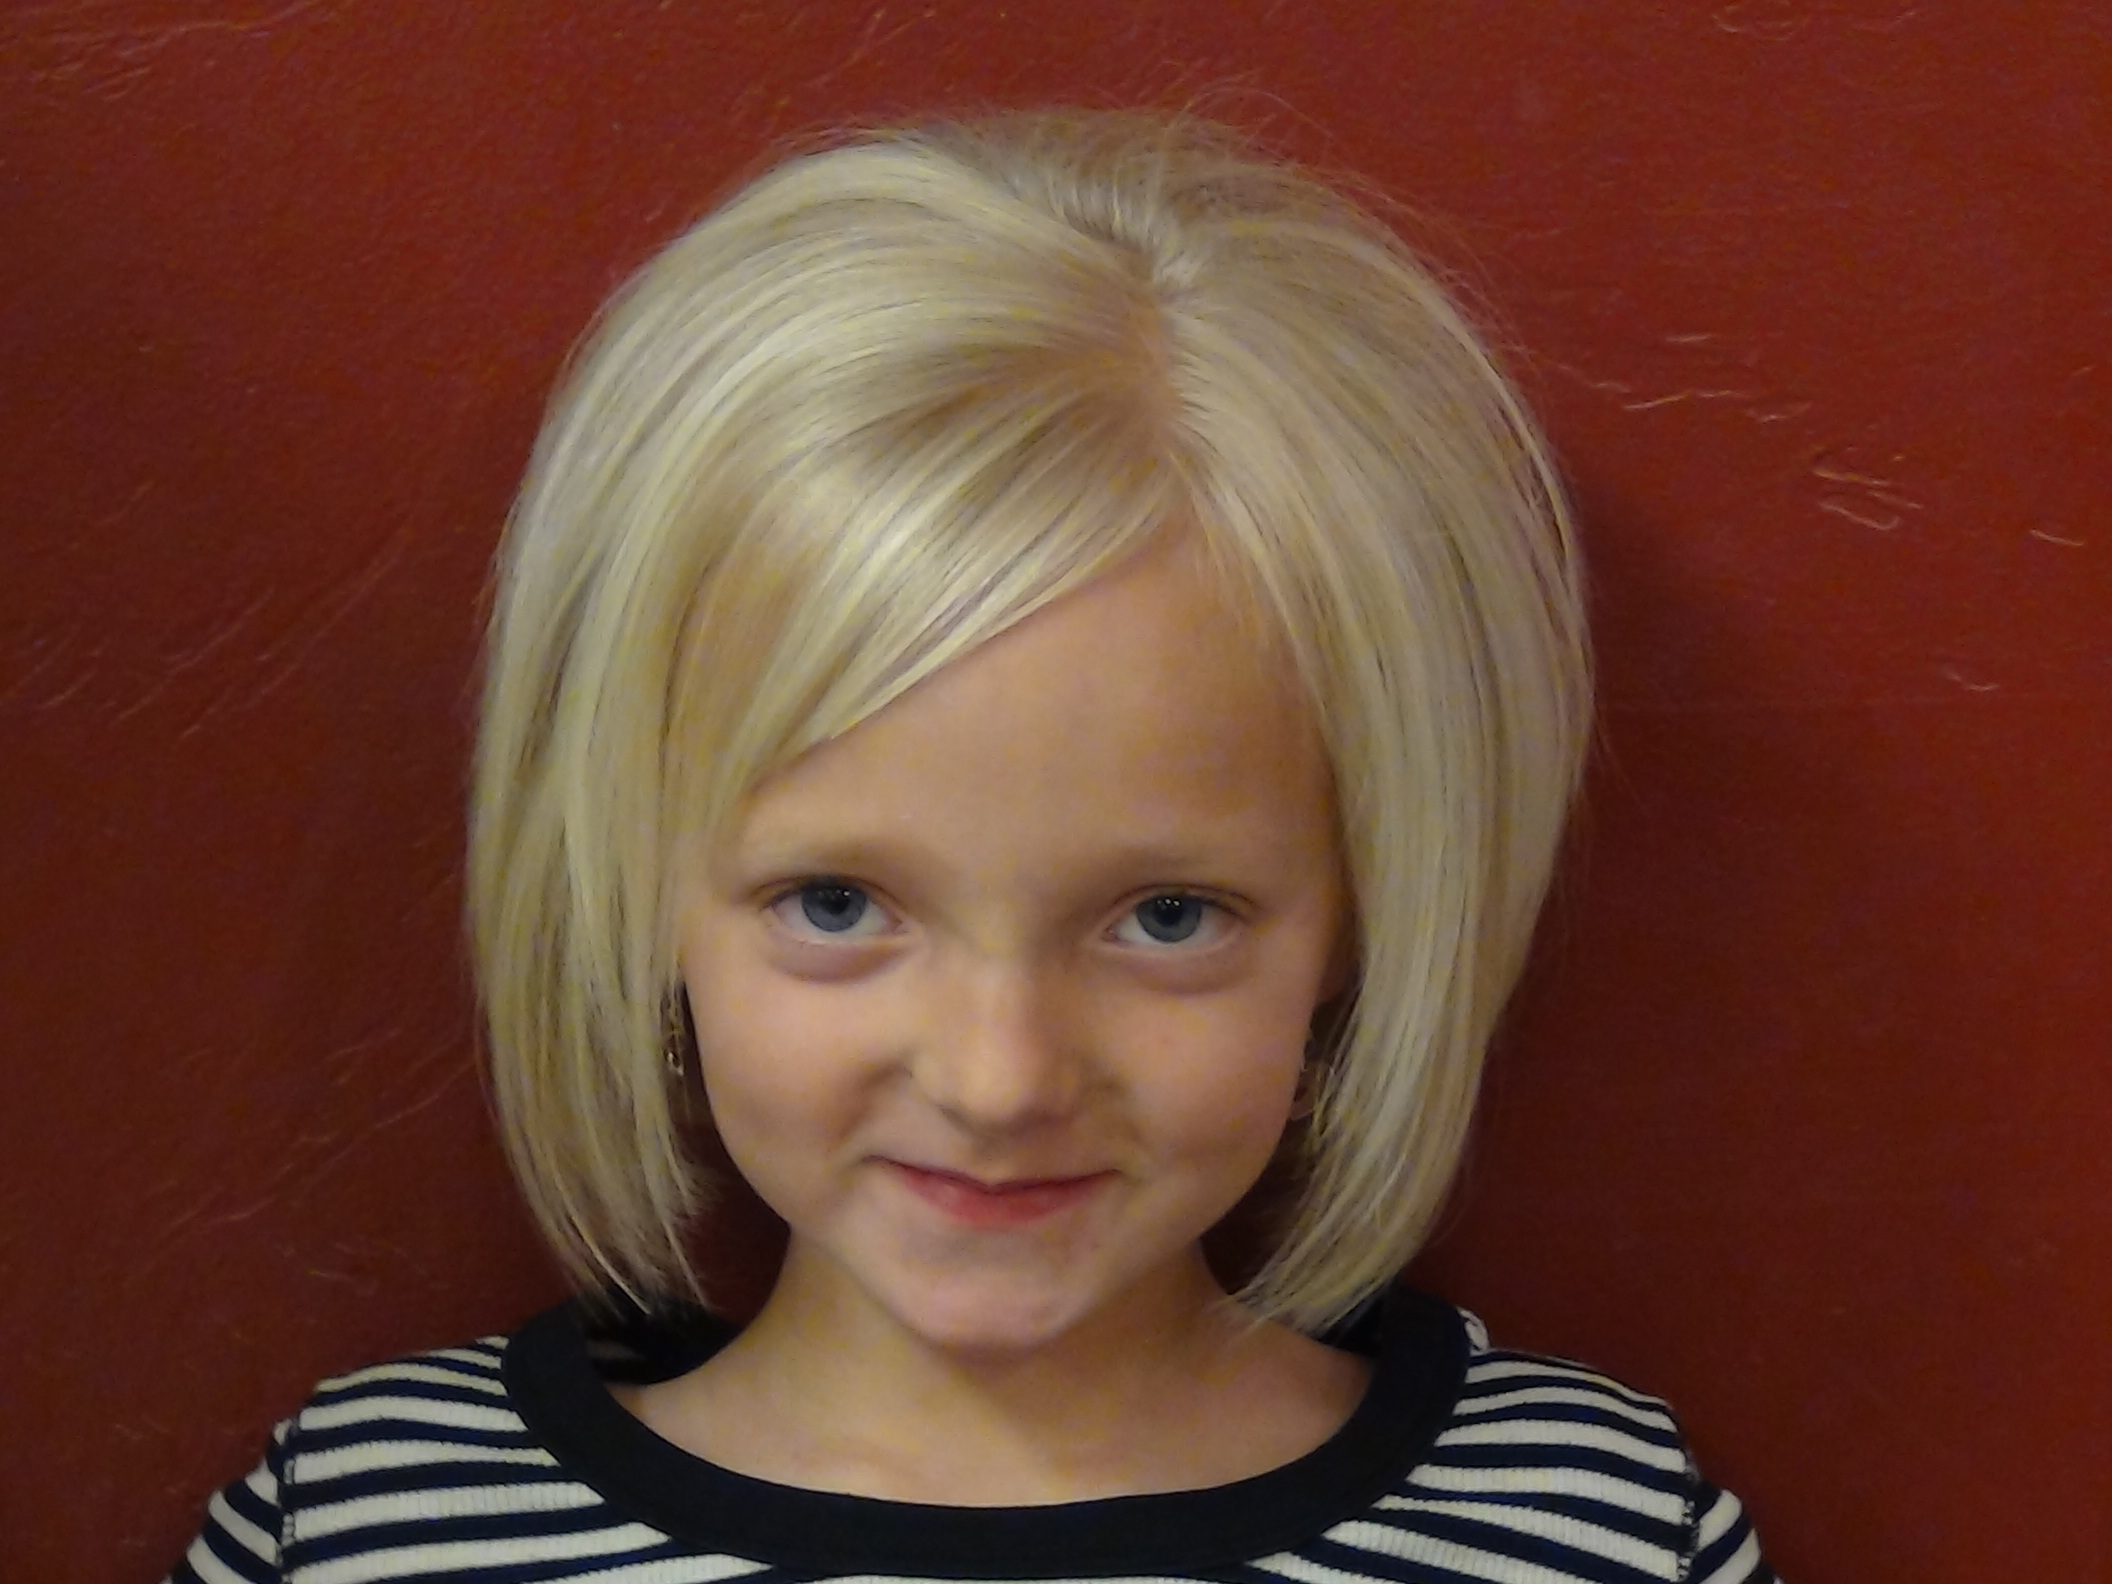 Little Girls Haircut And Style Boys And Girls Hairstyles